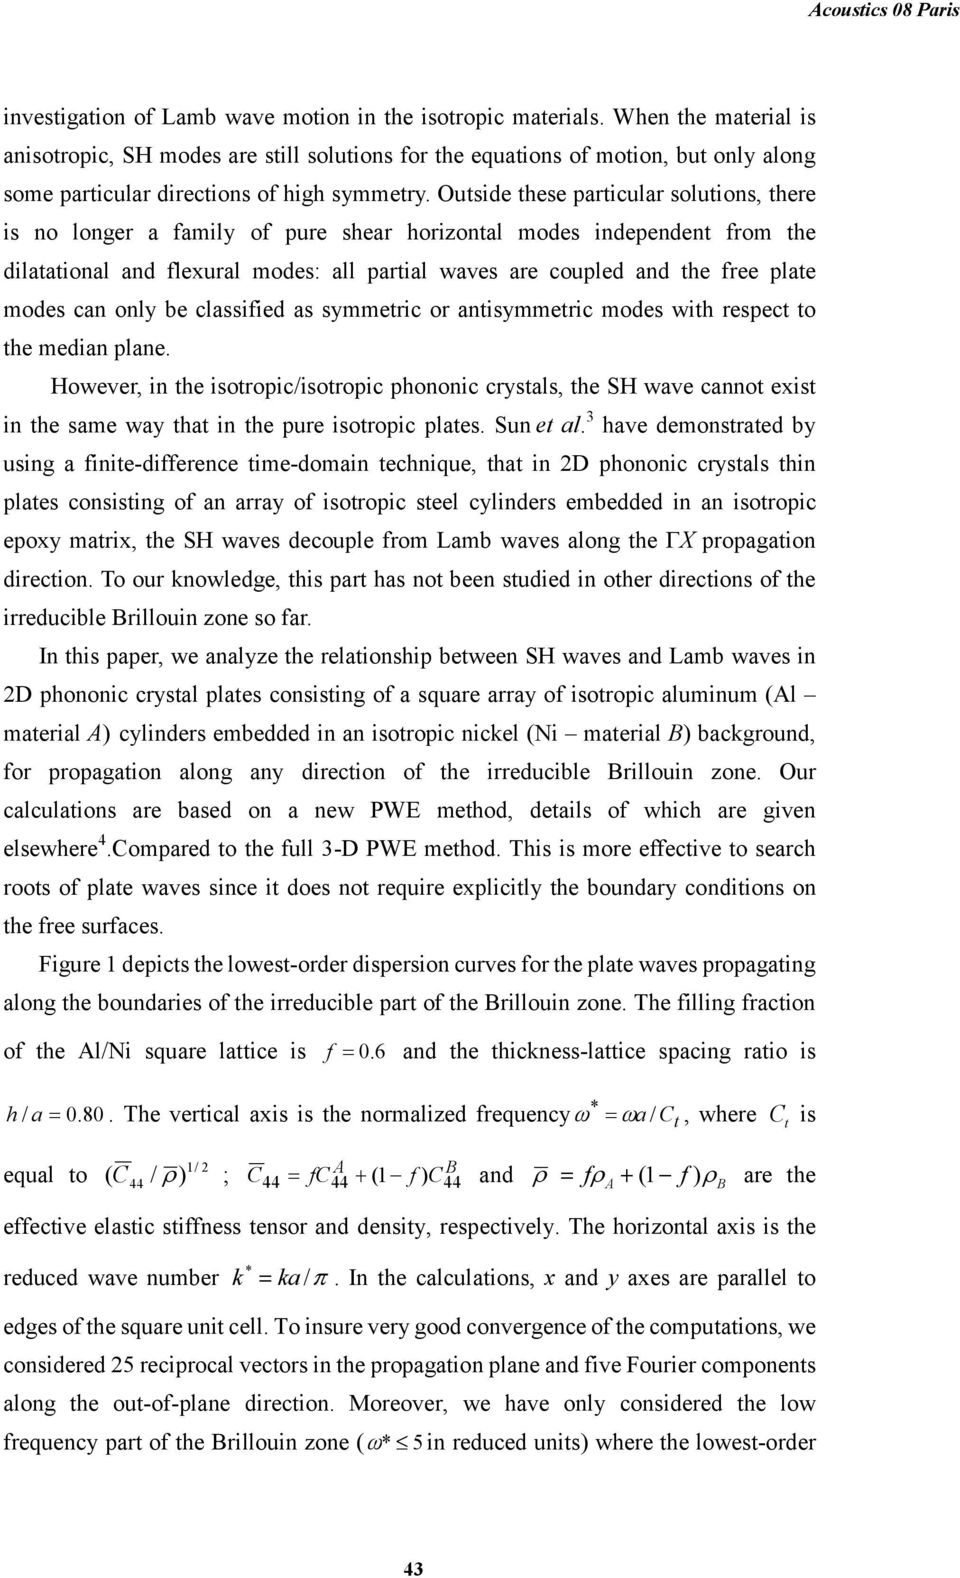 Outside these particular solutions, there is no longer a family of pure shear horizontal modes independent from the dilatational and flexural modes: all partial waves are coupled and the free plate